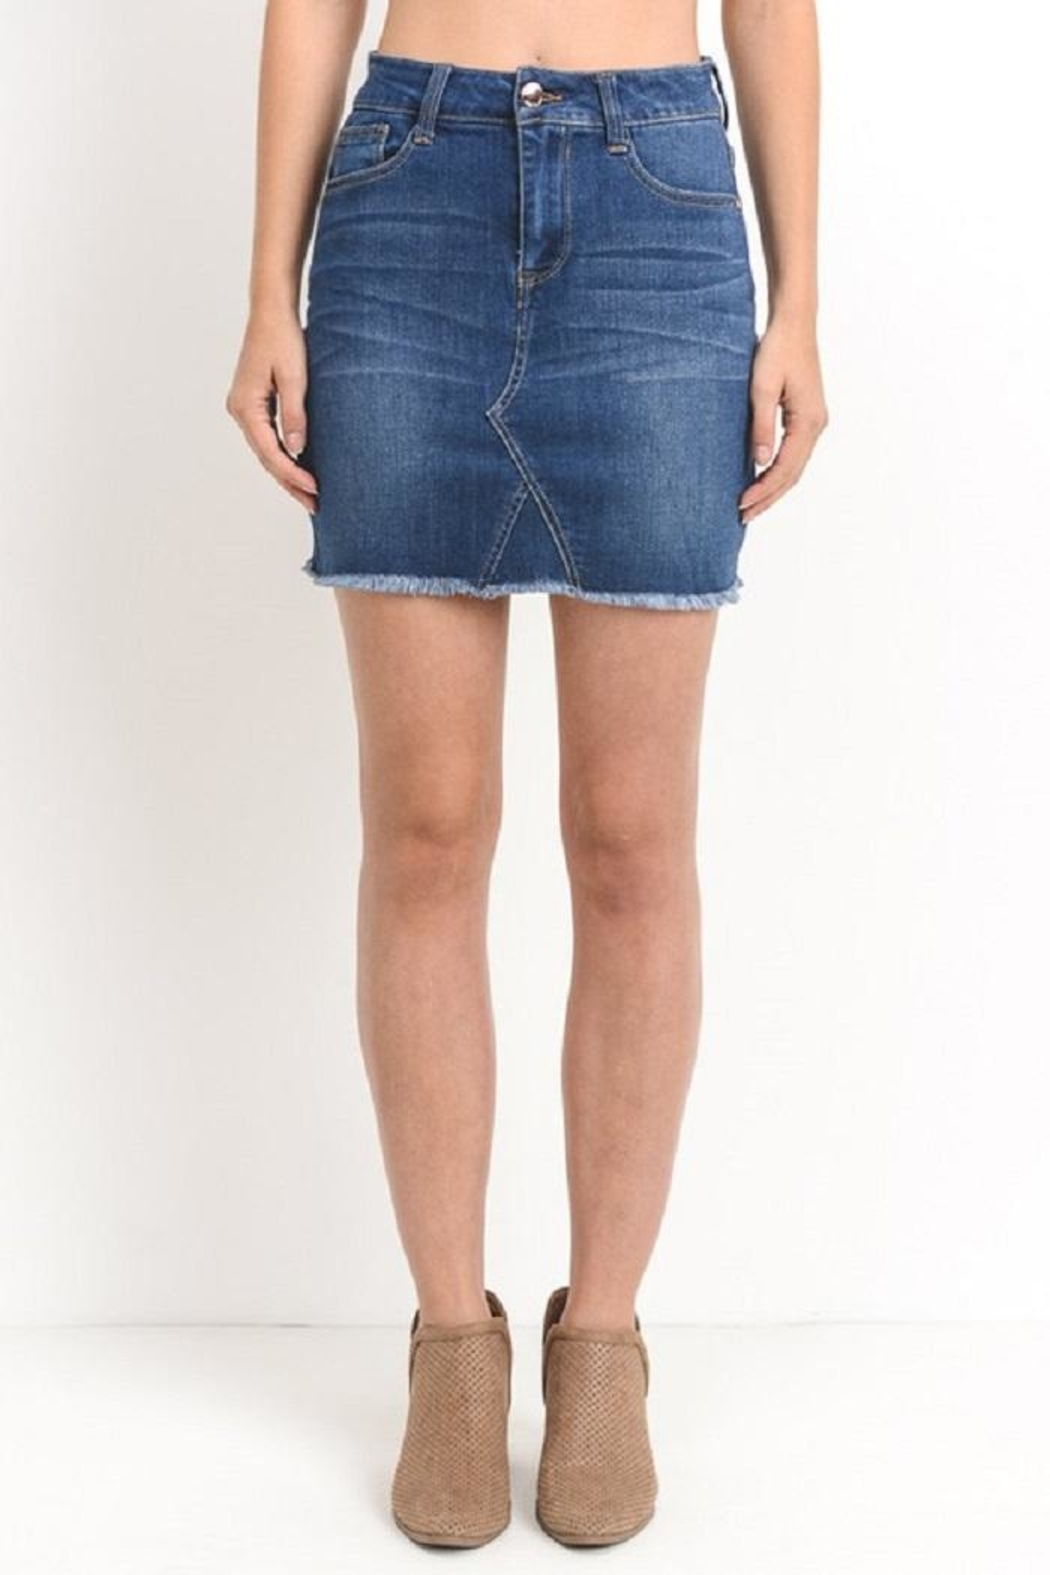 C'ESTTOI Denim Mini Skirt - Front Full Image